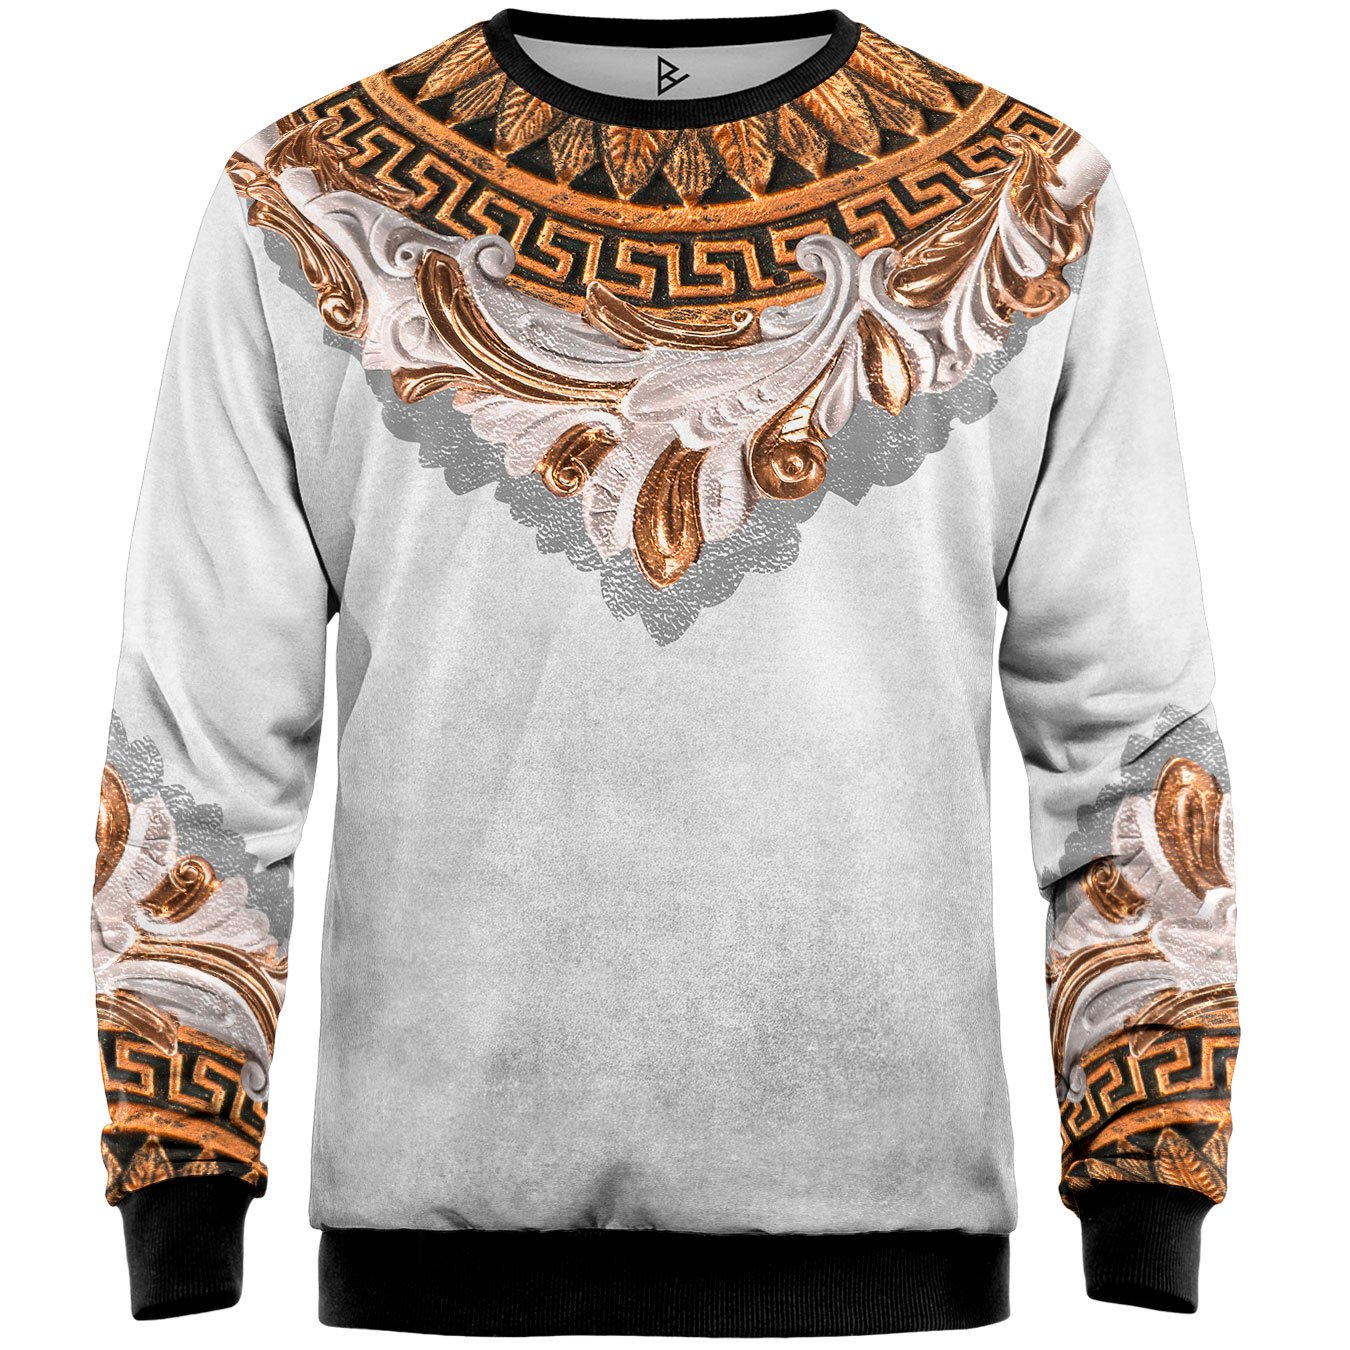 Blowhammer - Sweatshirt Herren - Golden Baroque SWT